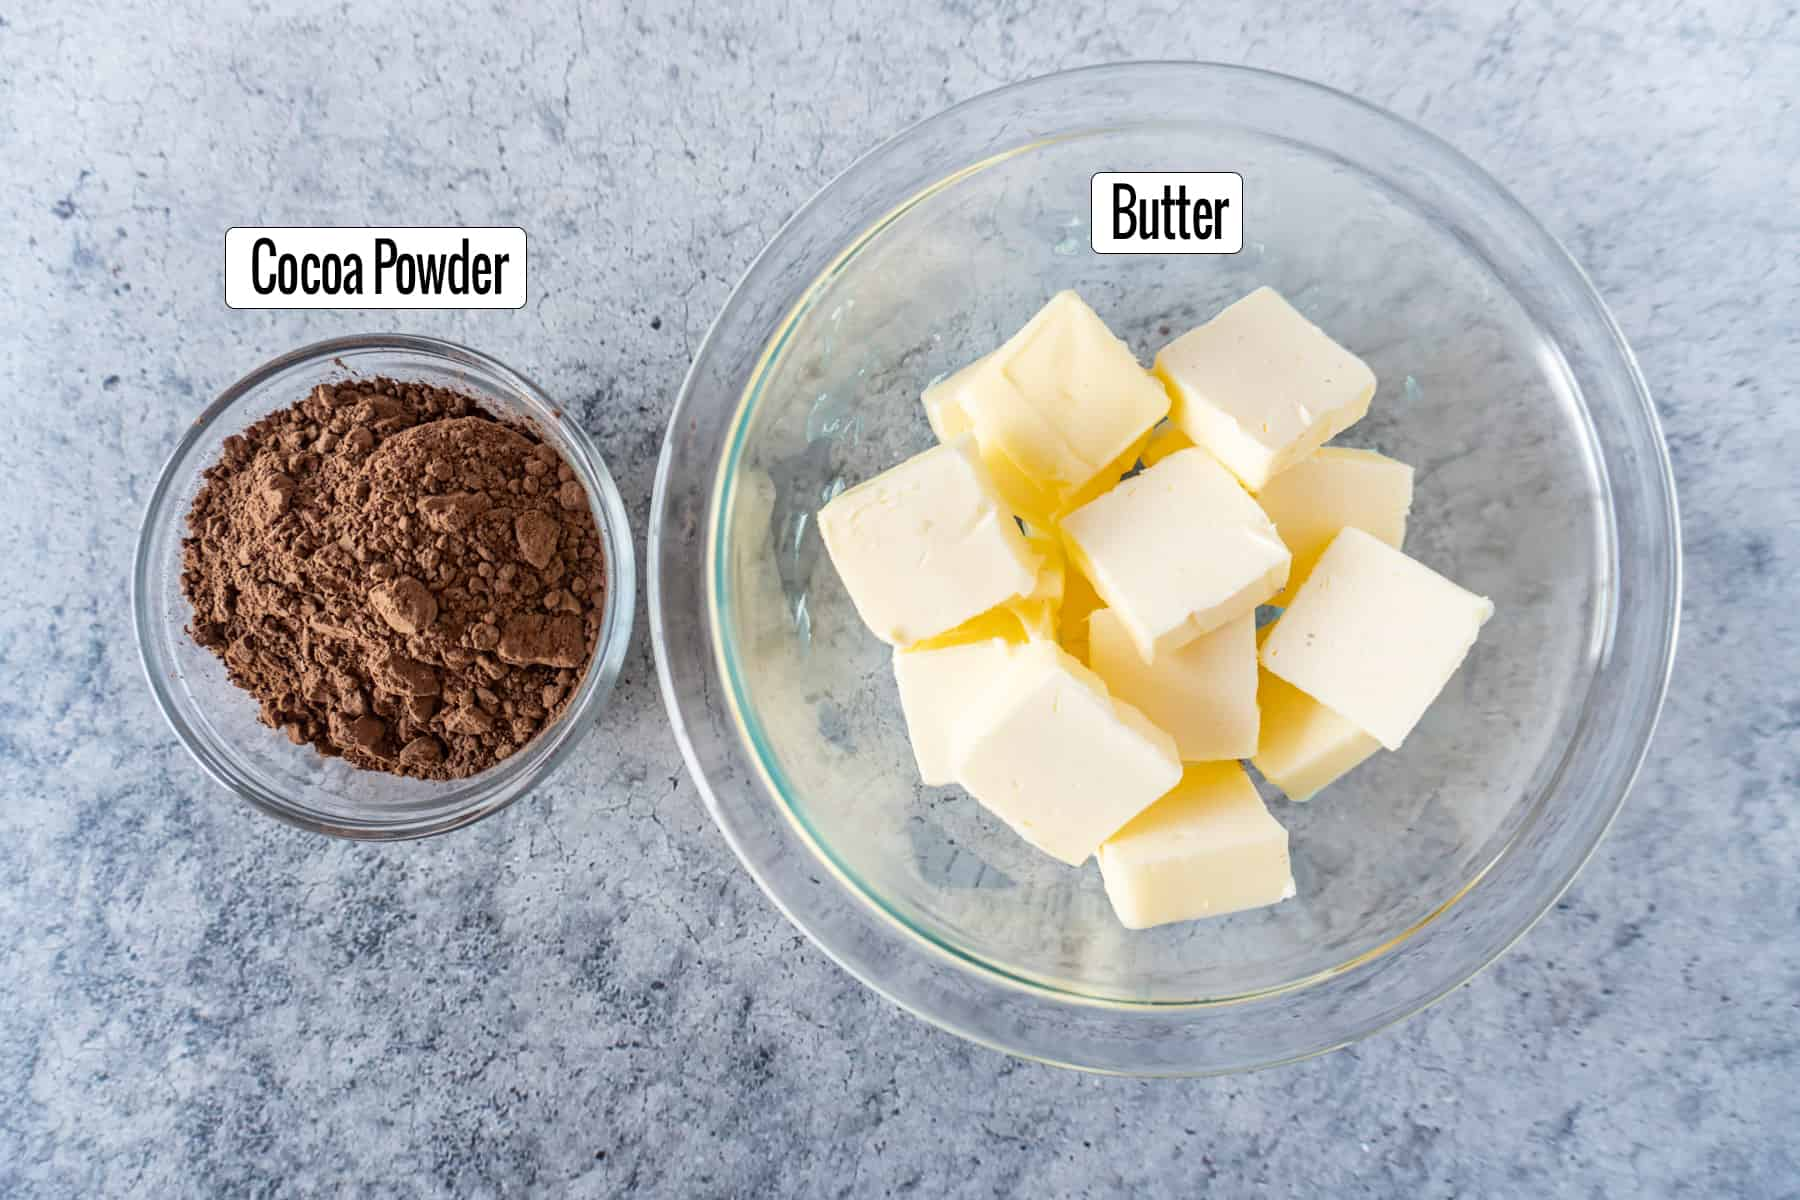 ingredients in bowls: cocoa powder, butter